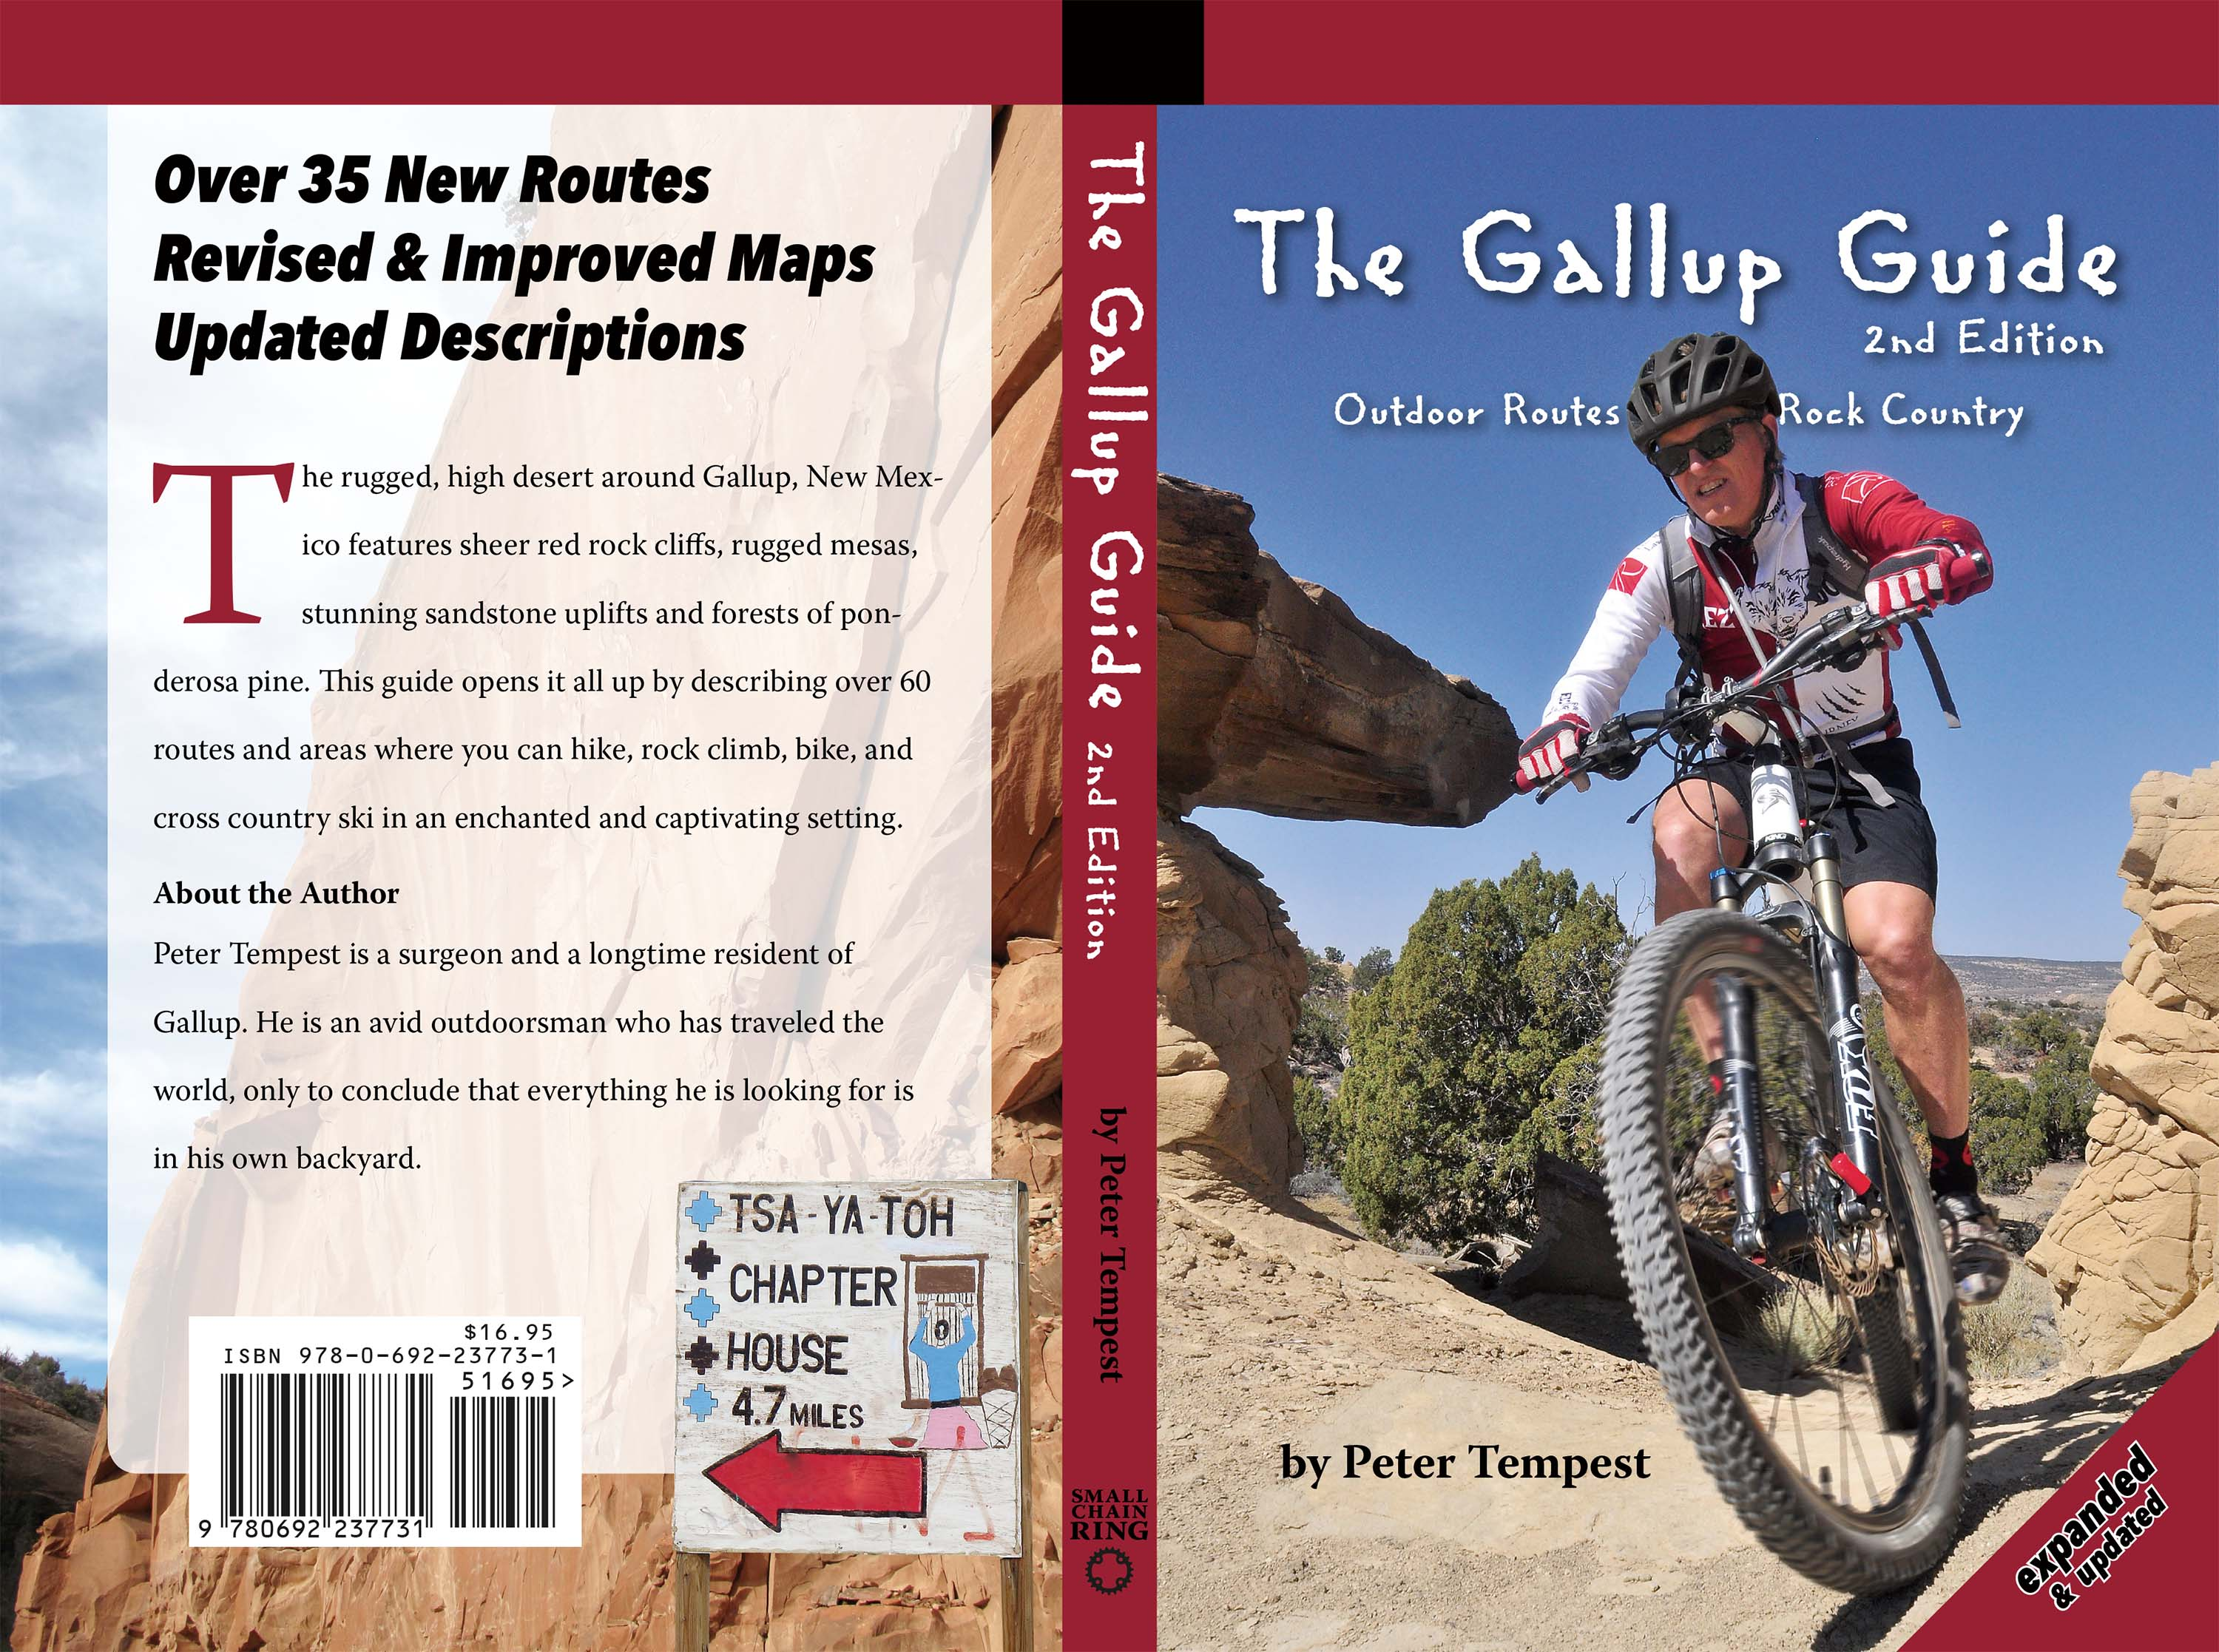 The Gallup Guide 2nd Edition